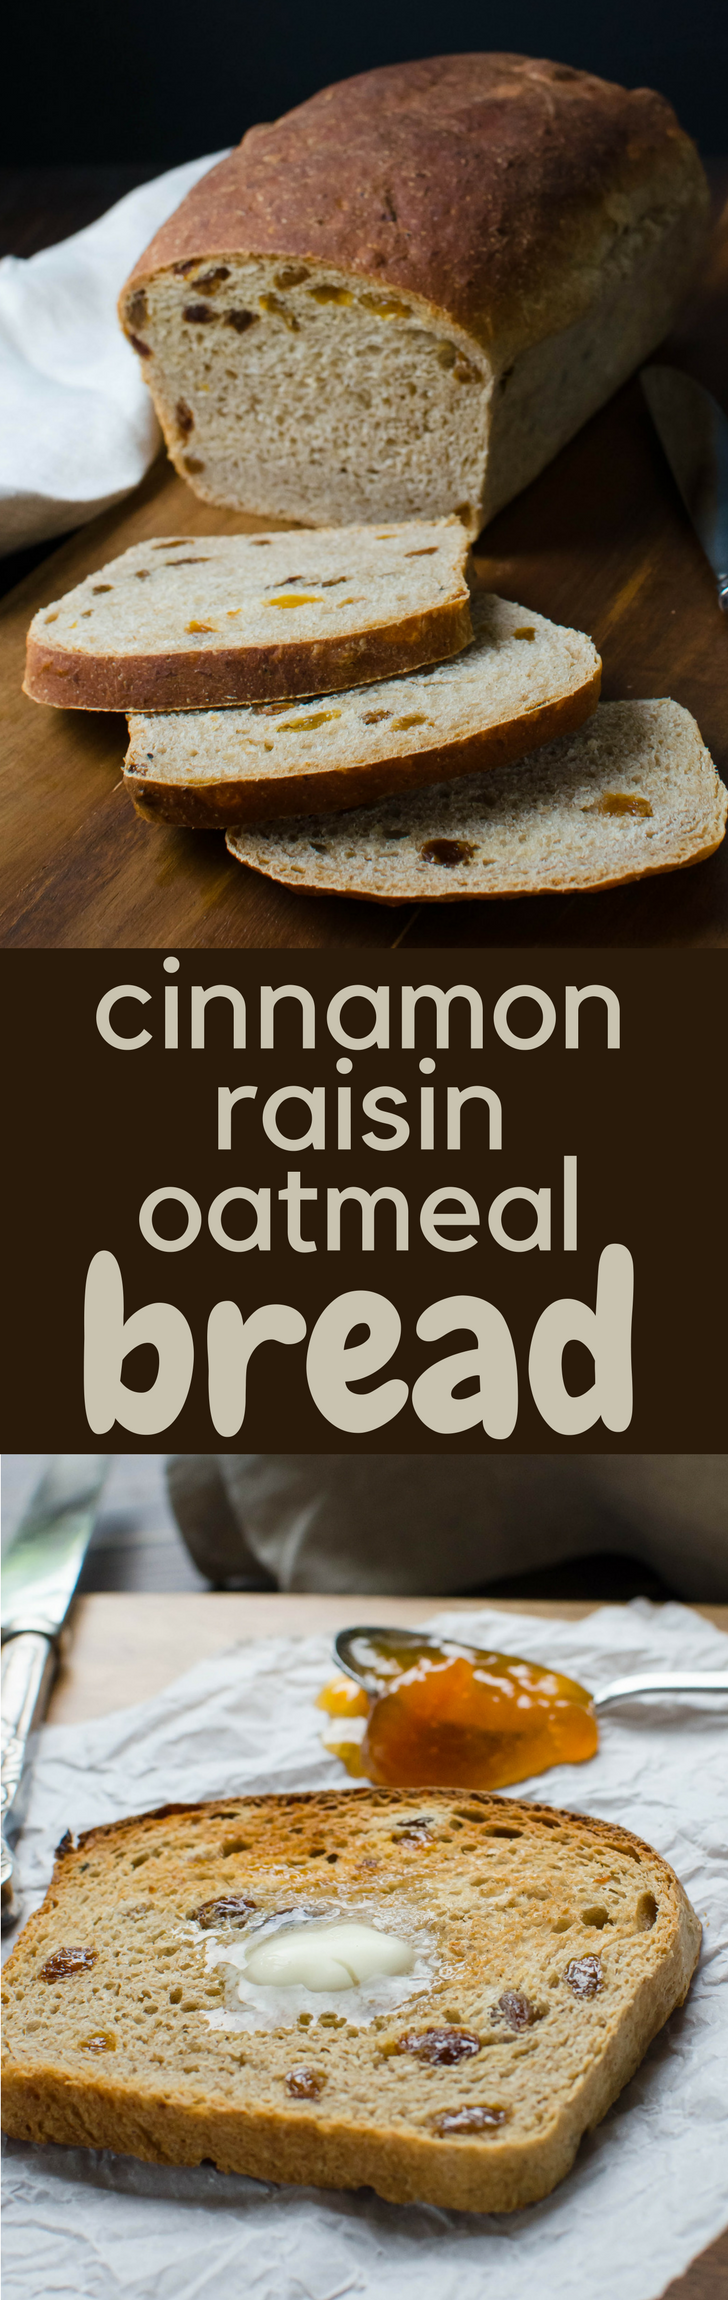 Need a good raisin bread recipe? Cinnamon Raisin Oatmeal Bread is a simple, foolproof loaf that's hearty and delicious. Makes 2 large loaves. #homemadebread #raisinbread #cinnamonraisinbread #raisinbreadrecipe #bakingbread #baking #bread #breadrecipe #oatmealbread #maple #yeastbread #yeast #breakfast #toast